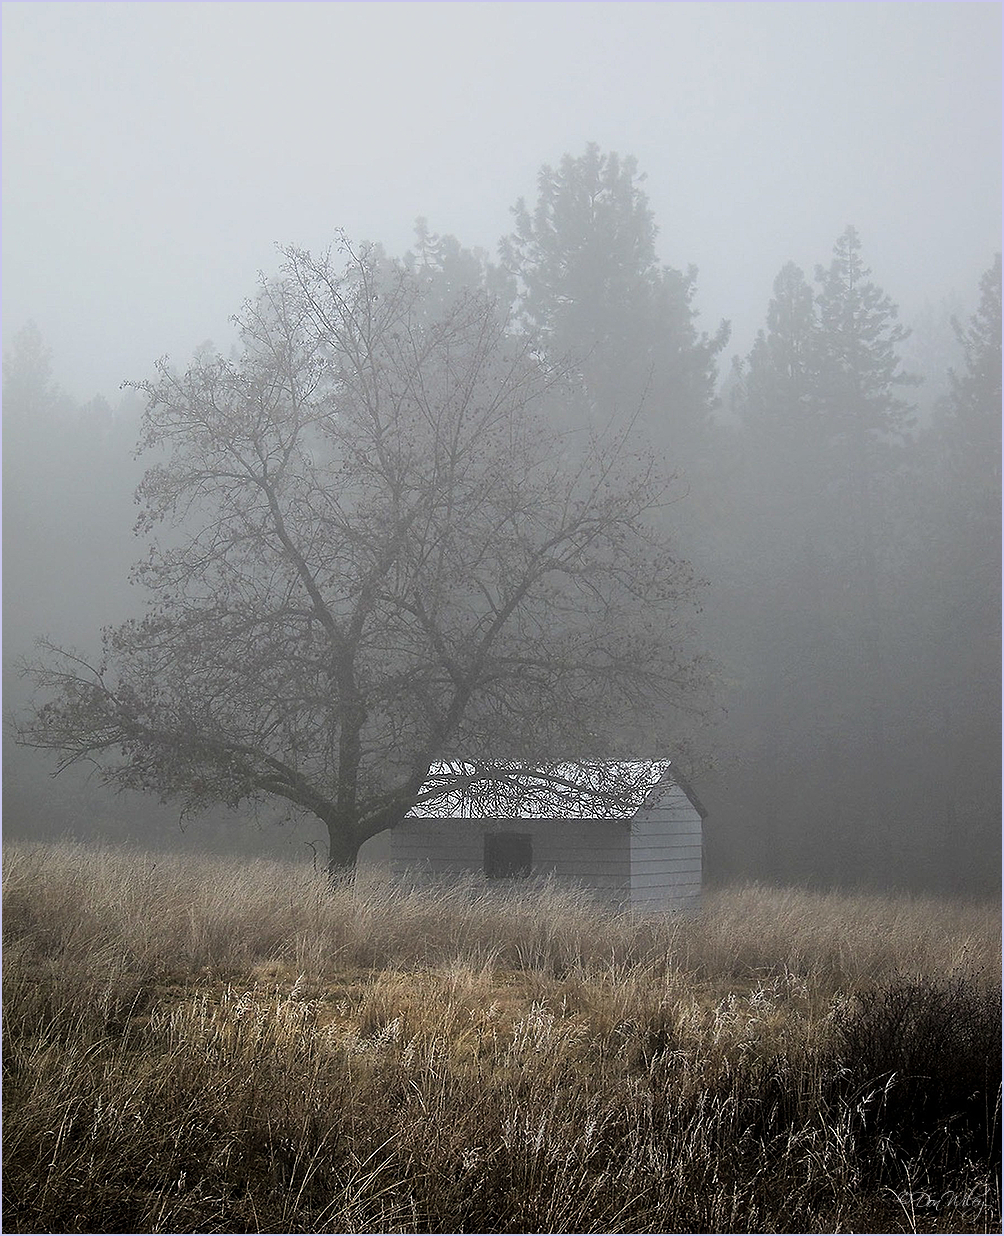 Shed in Fog